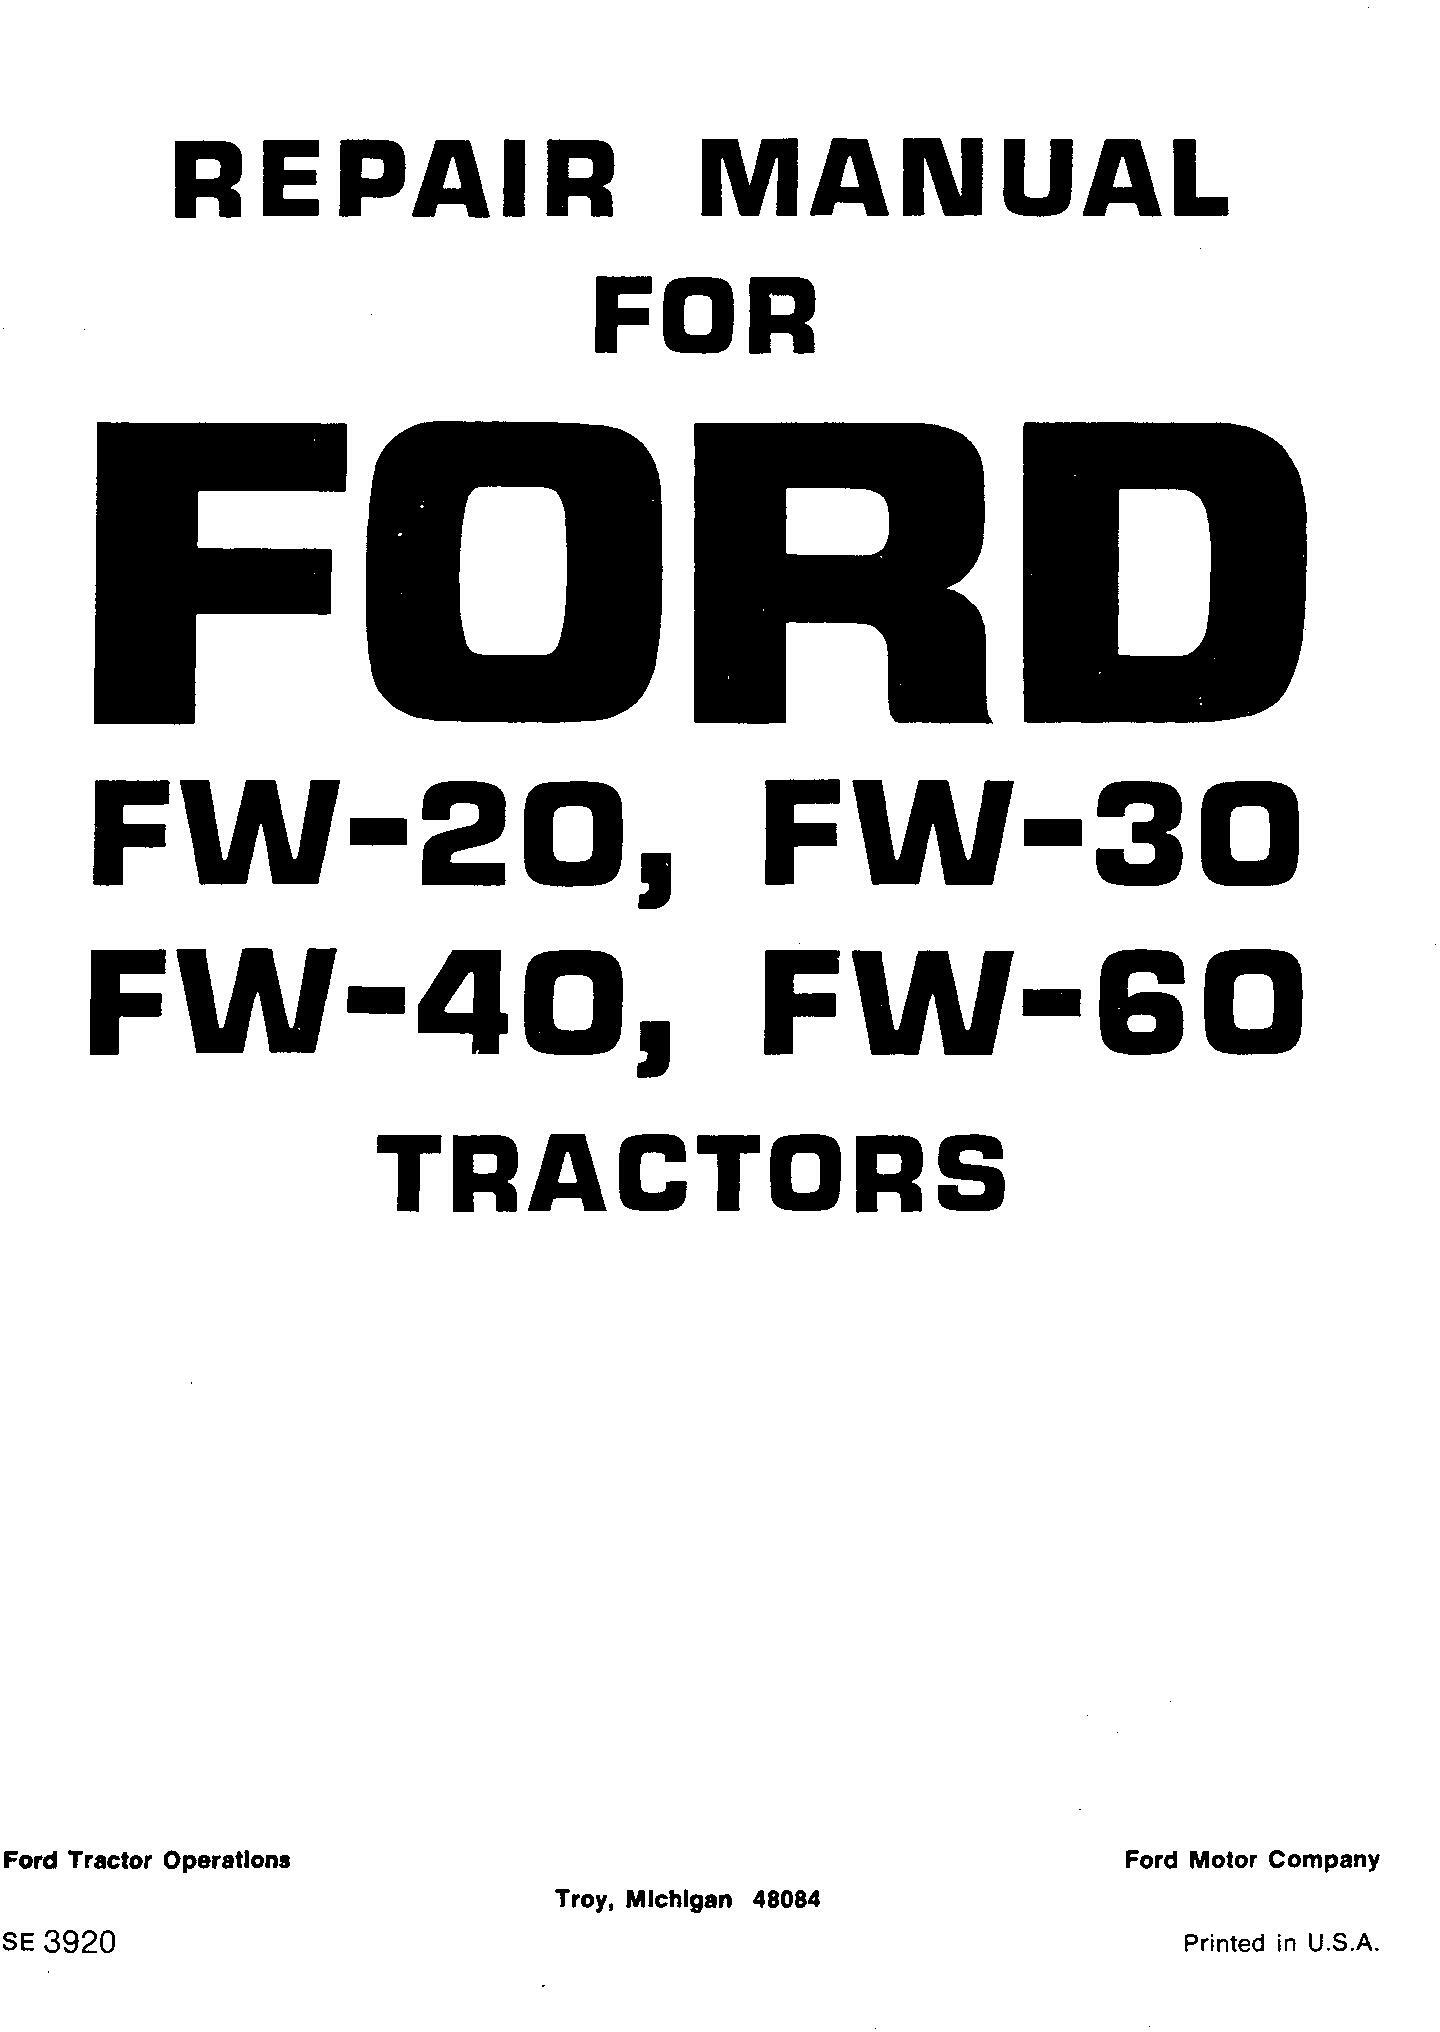 Ford Fw20 Fw30 Fw40 Fw60 Tractor Service Manual Se